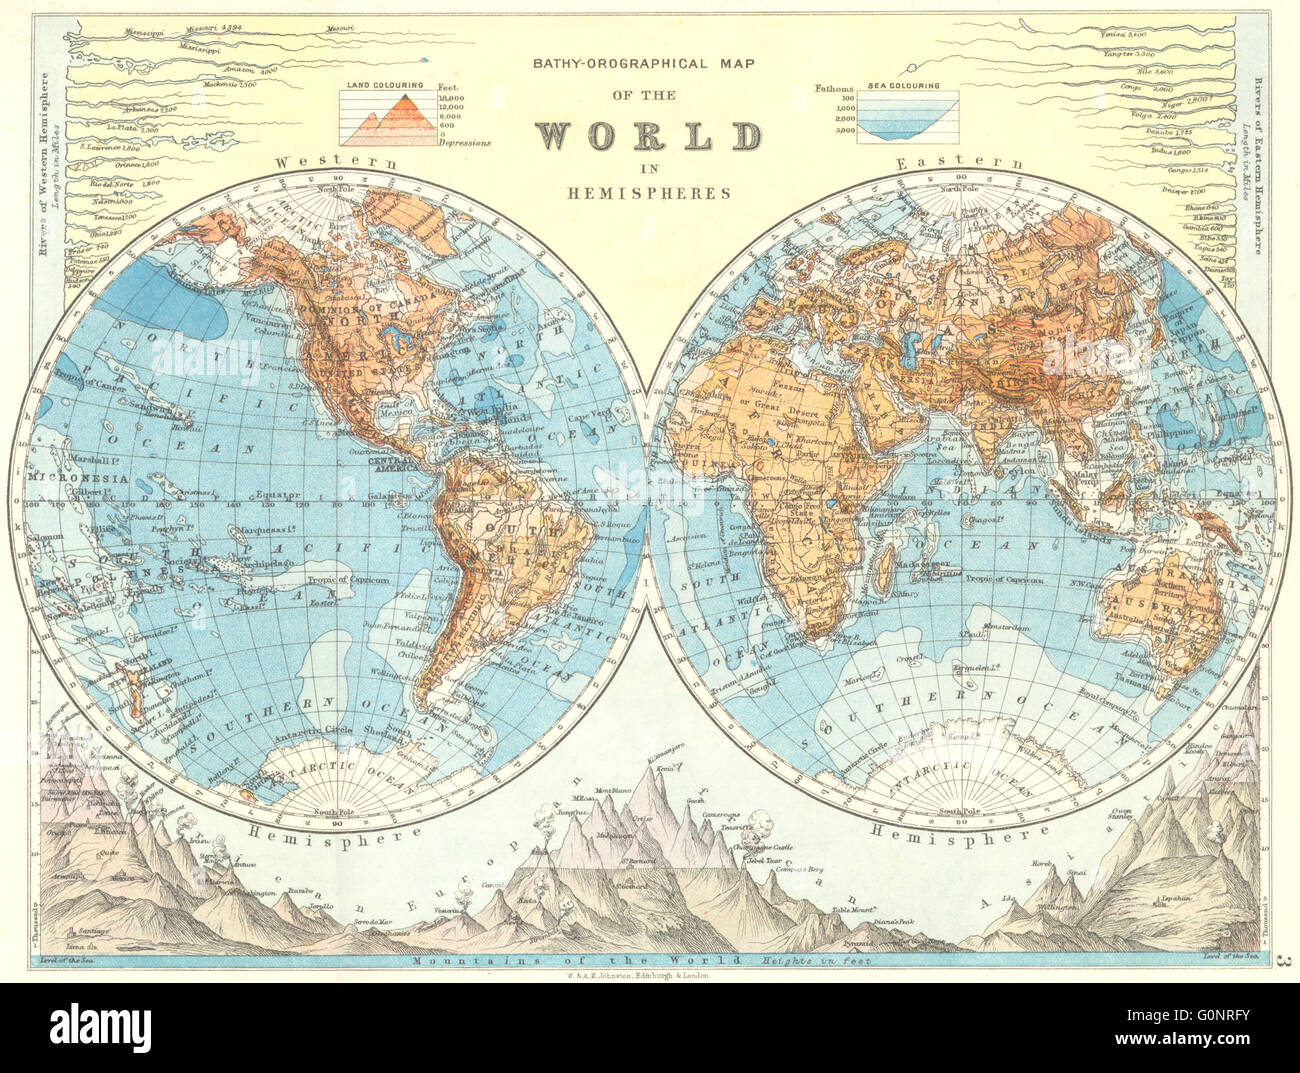 WORLD TWIN HEMISPHERES Relief Mountains Rivers JOHNSTON - Rivers and mountains of the world